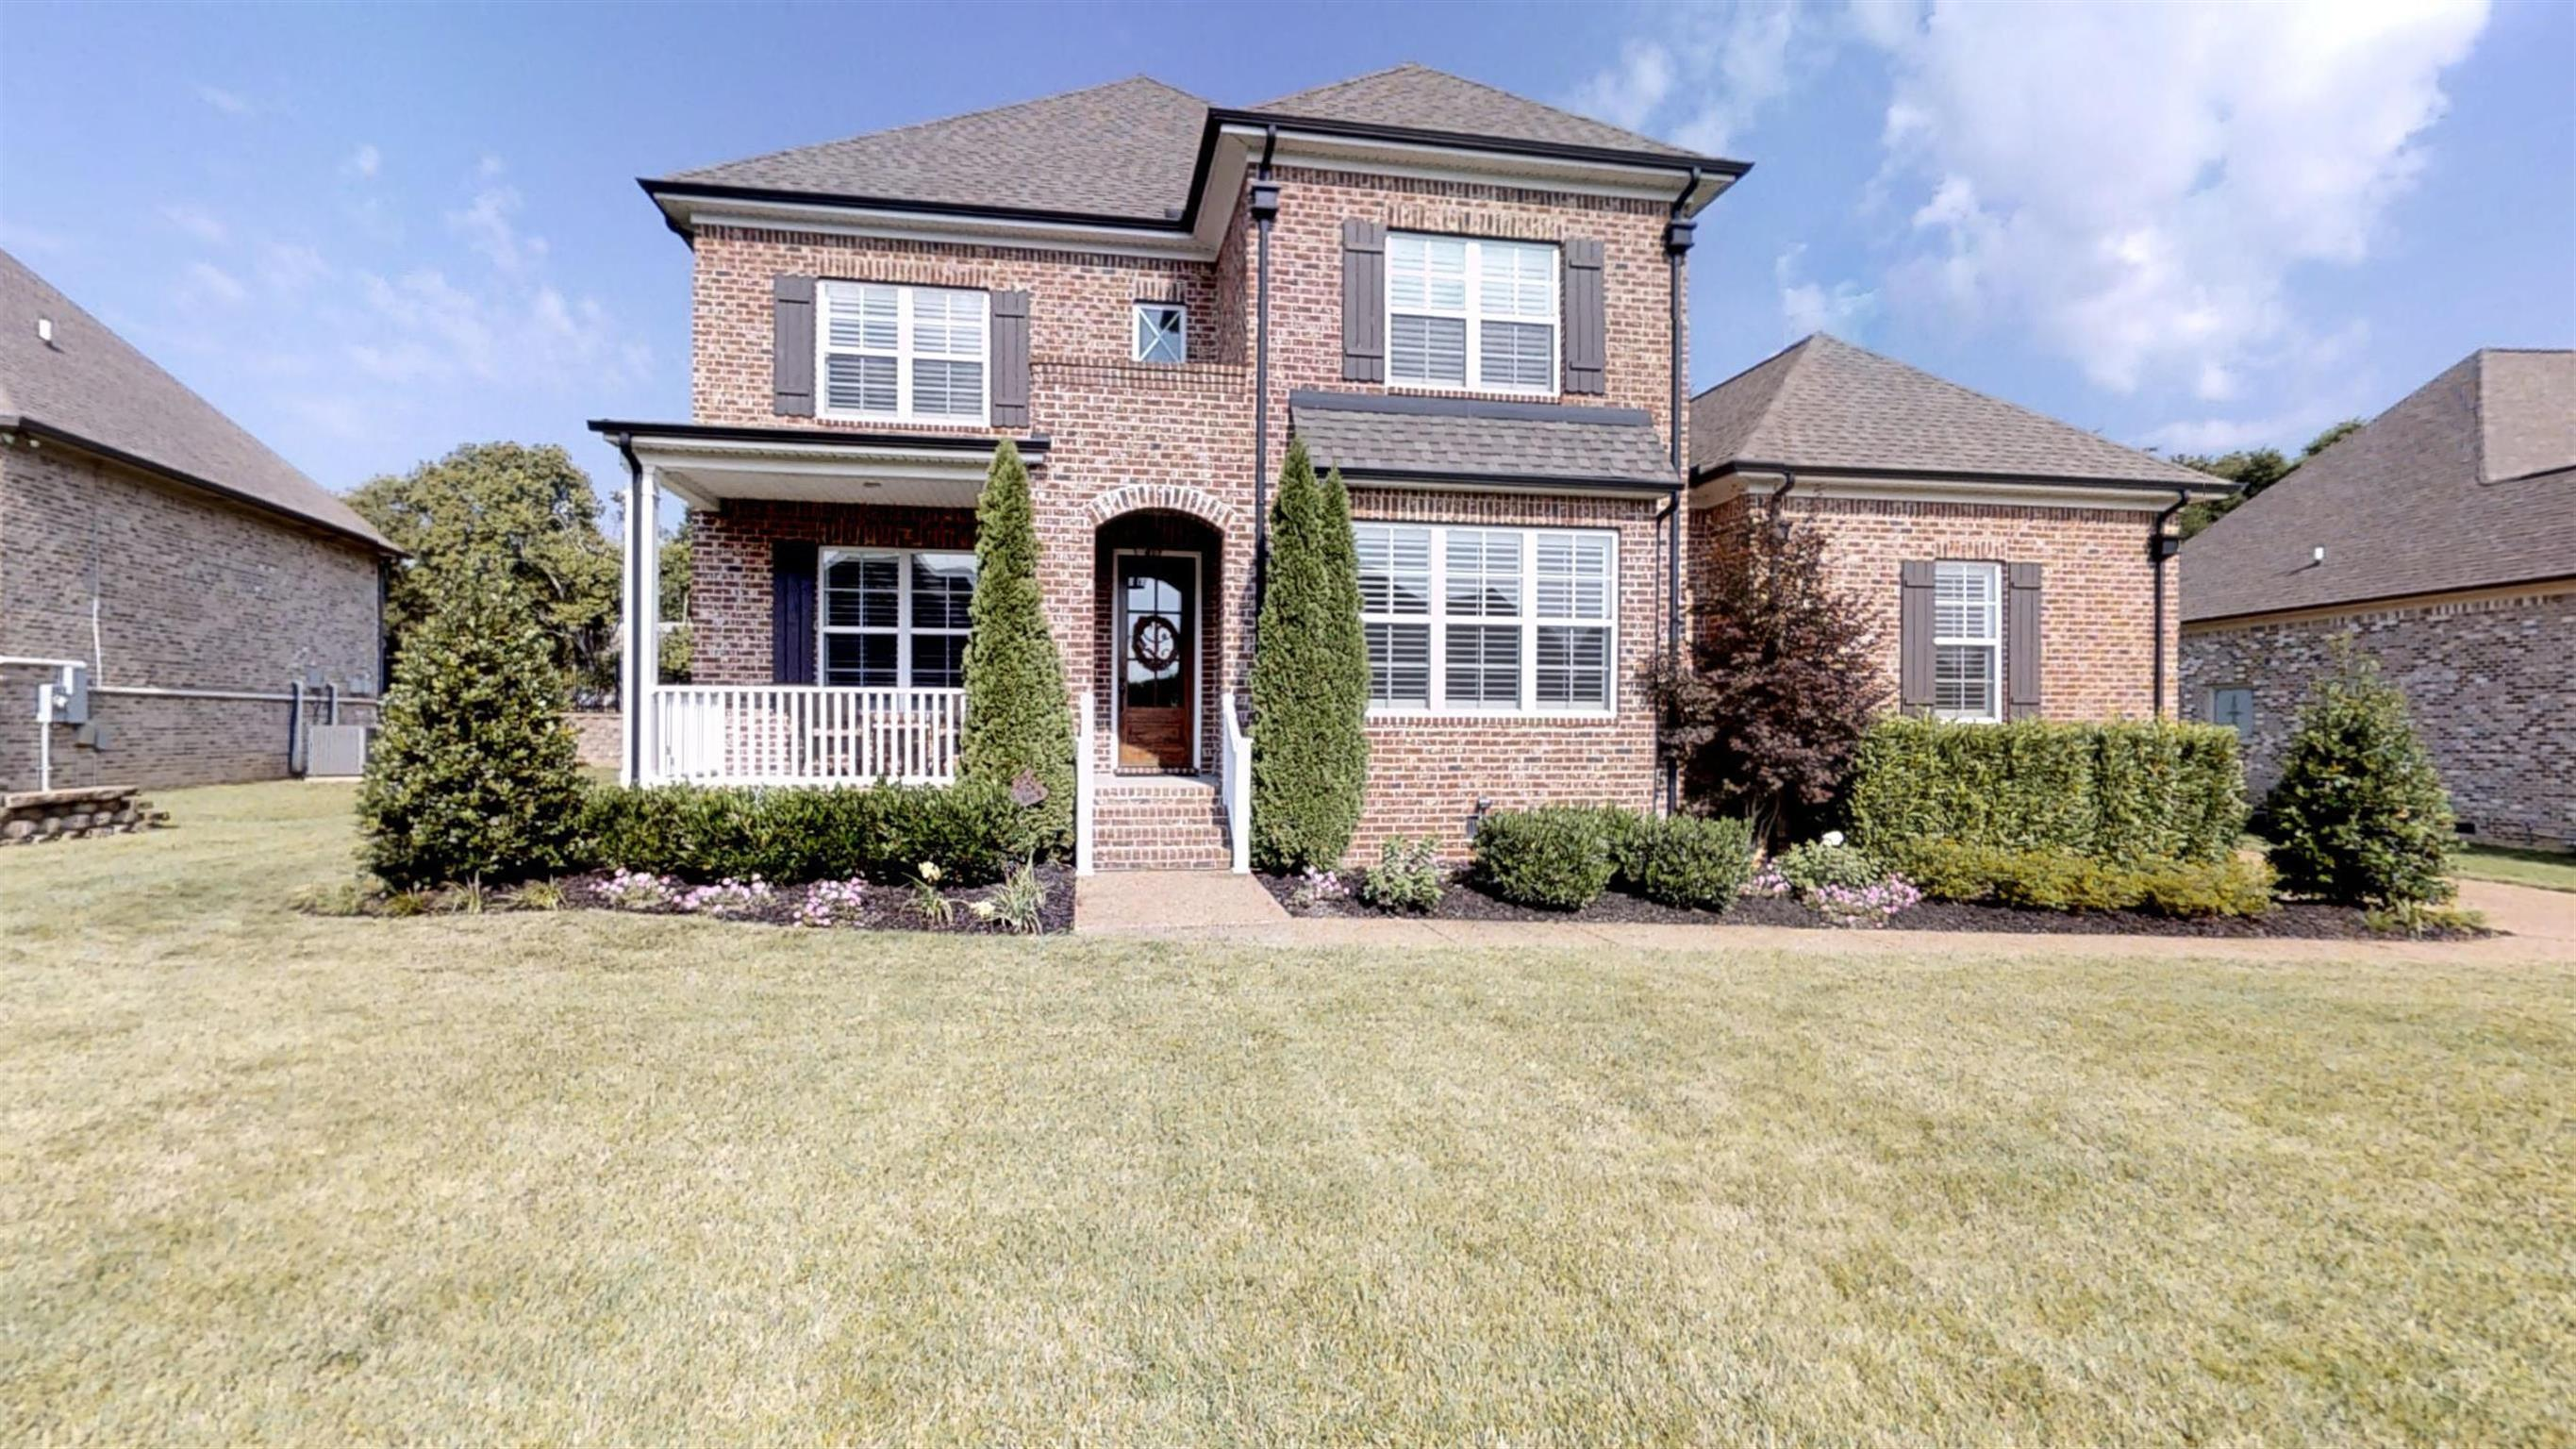 4061 Miles Johnson Pkwy, Spring Hill, TN 37174 - Spring Hill, TN real estate listing